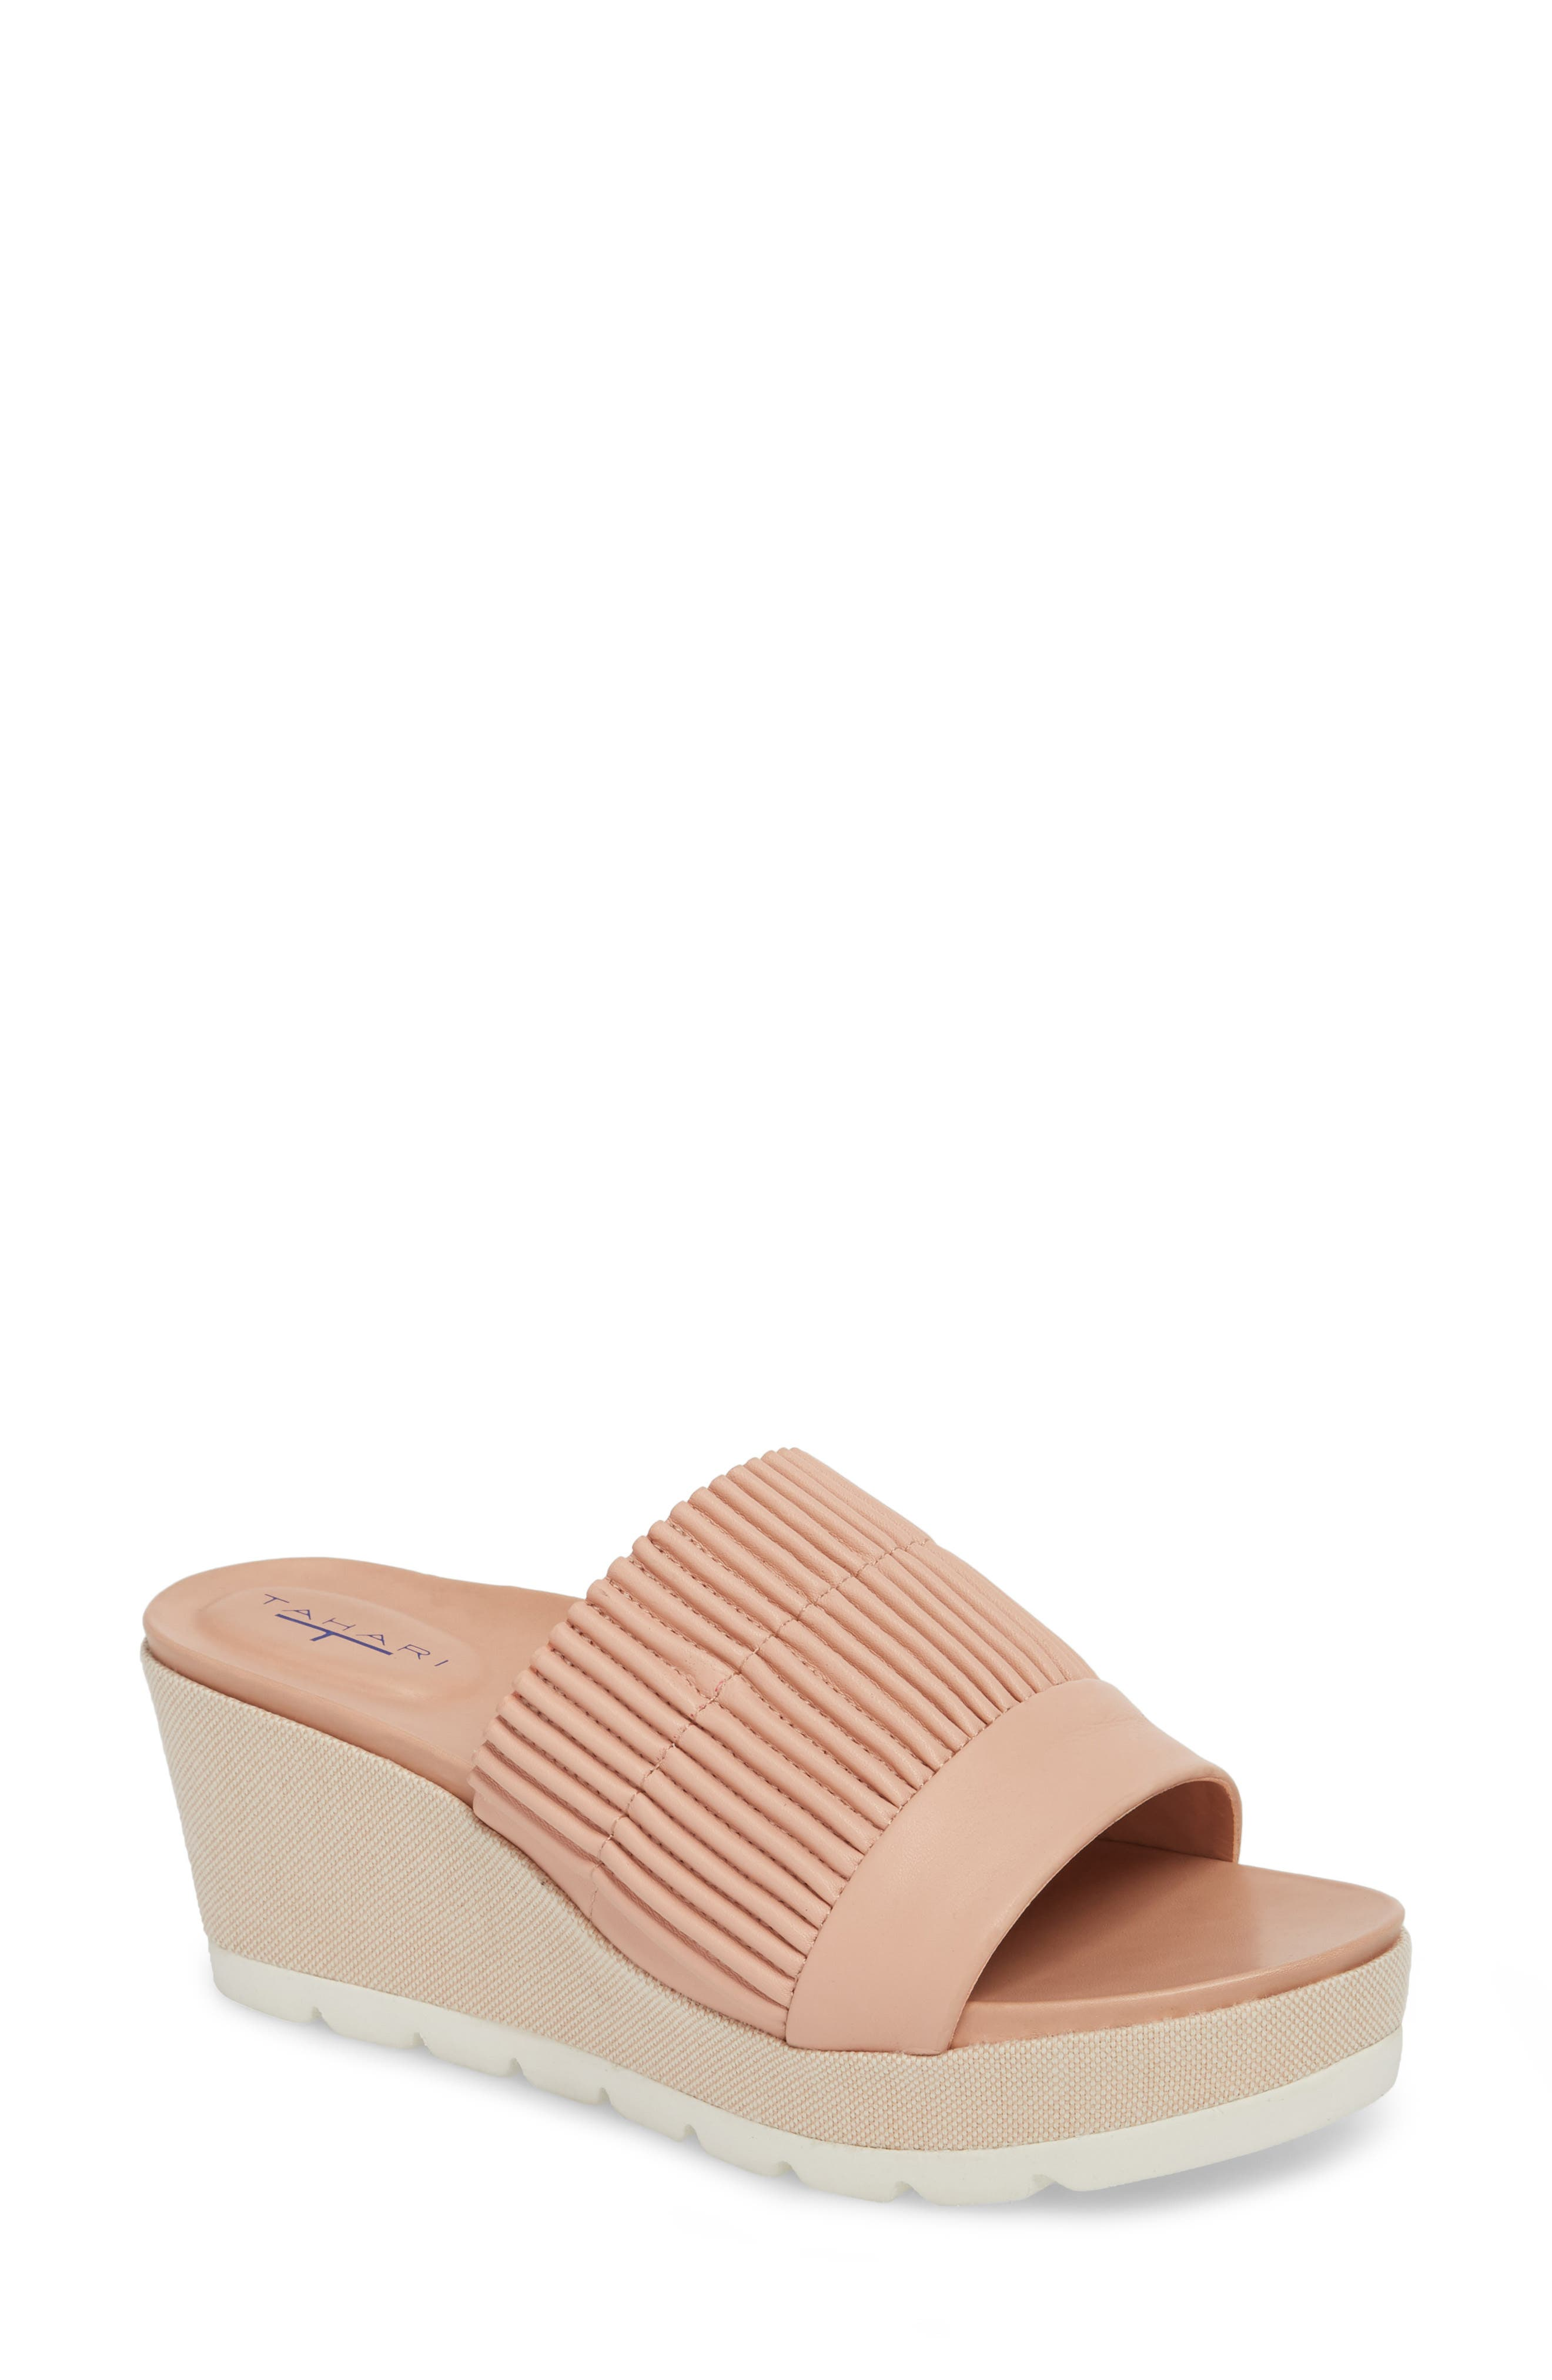 Gwen Wedge Mule,                         Main,                         color, Blush Leather